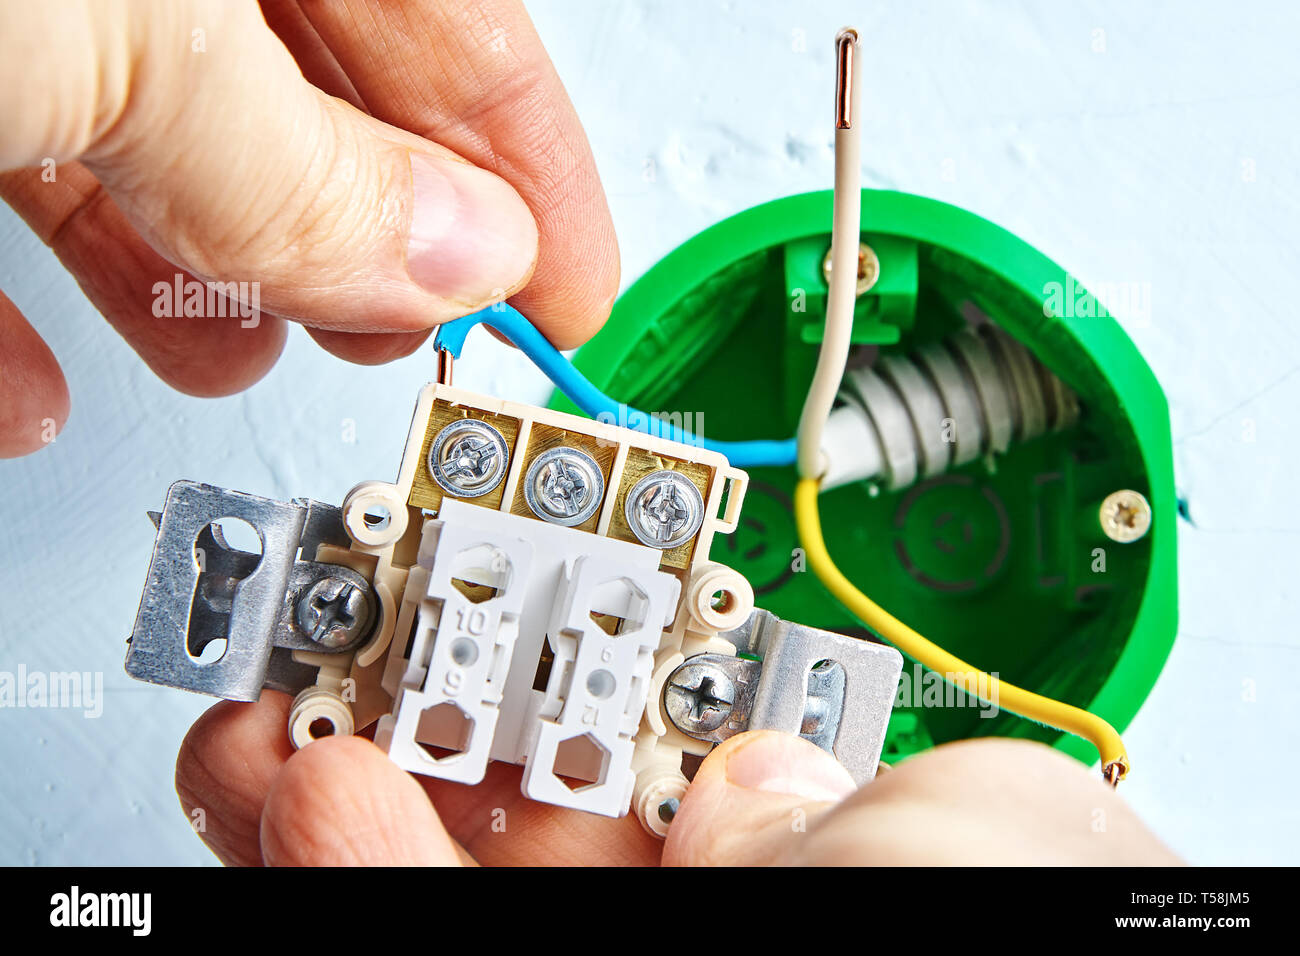 Marvelous Installation Of New Double Light Switch Connecting To Round Outlet Wiring Digital Resources Jebrpcompassionincorg